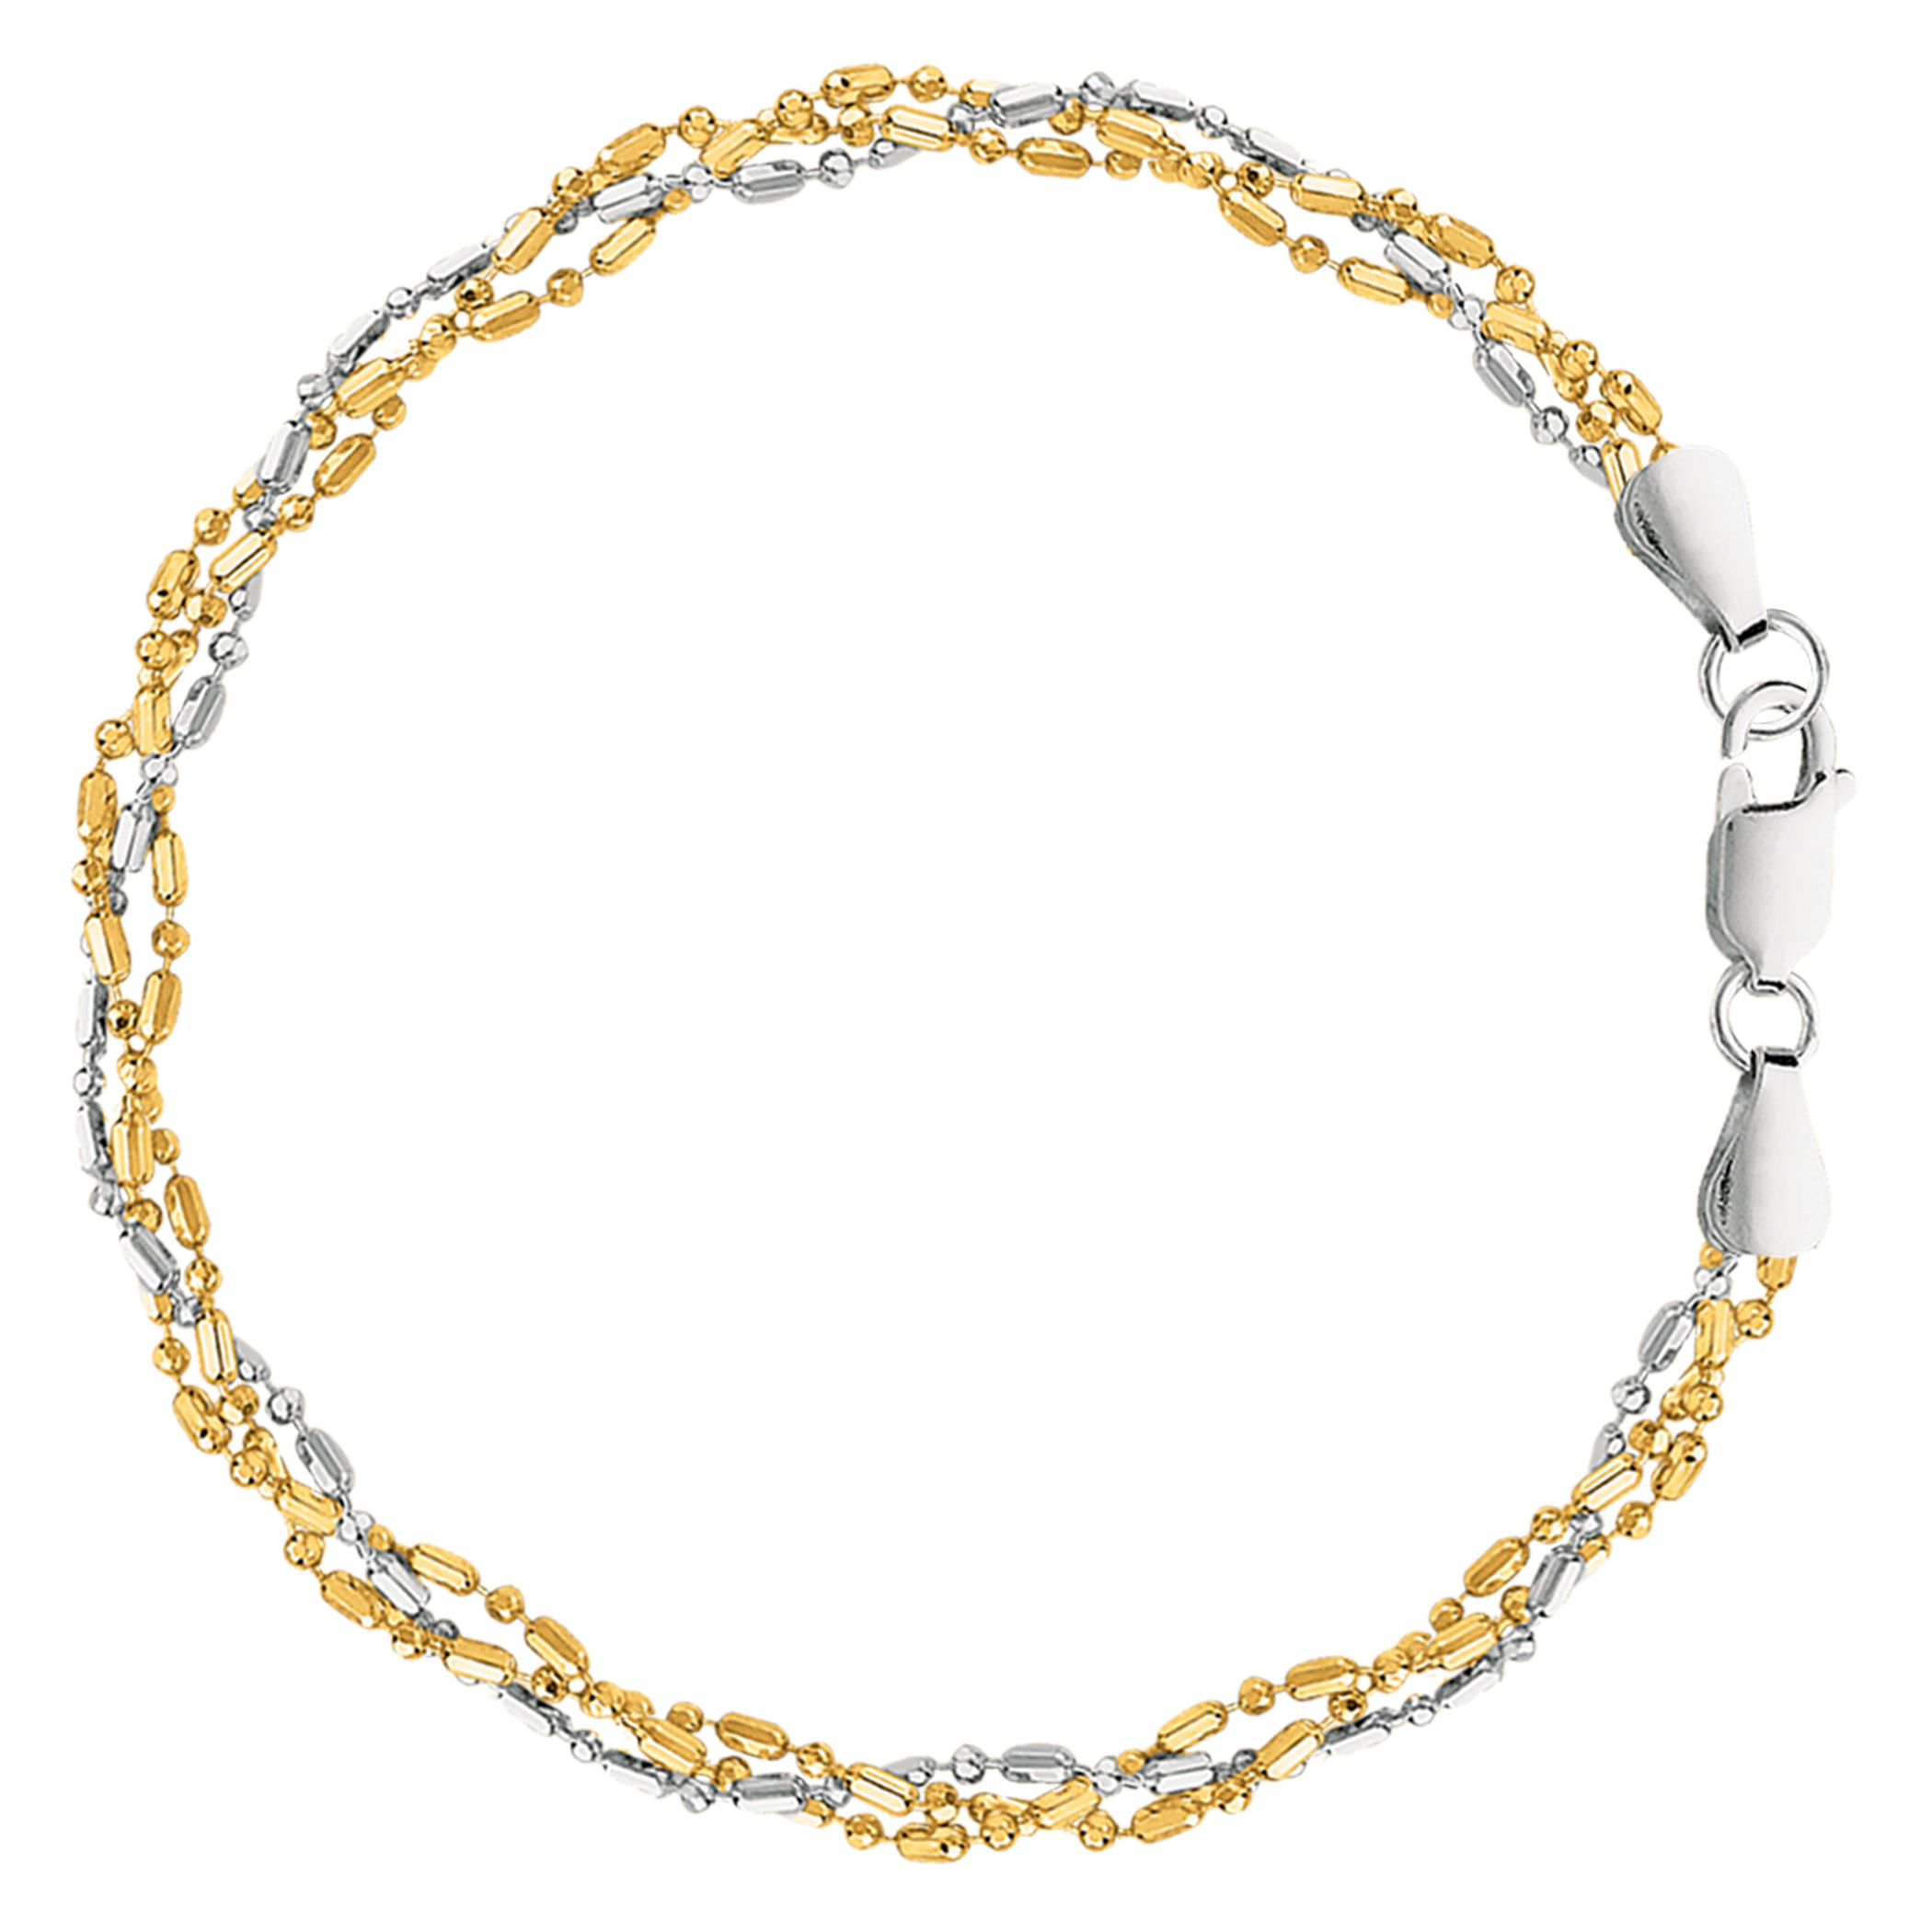 White And Yellow Triple Bead Chain Anklet In Sterling Silver, 10″